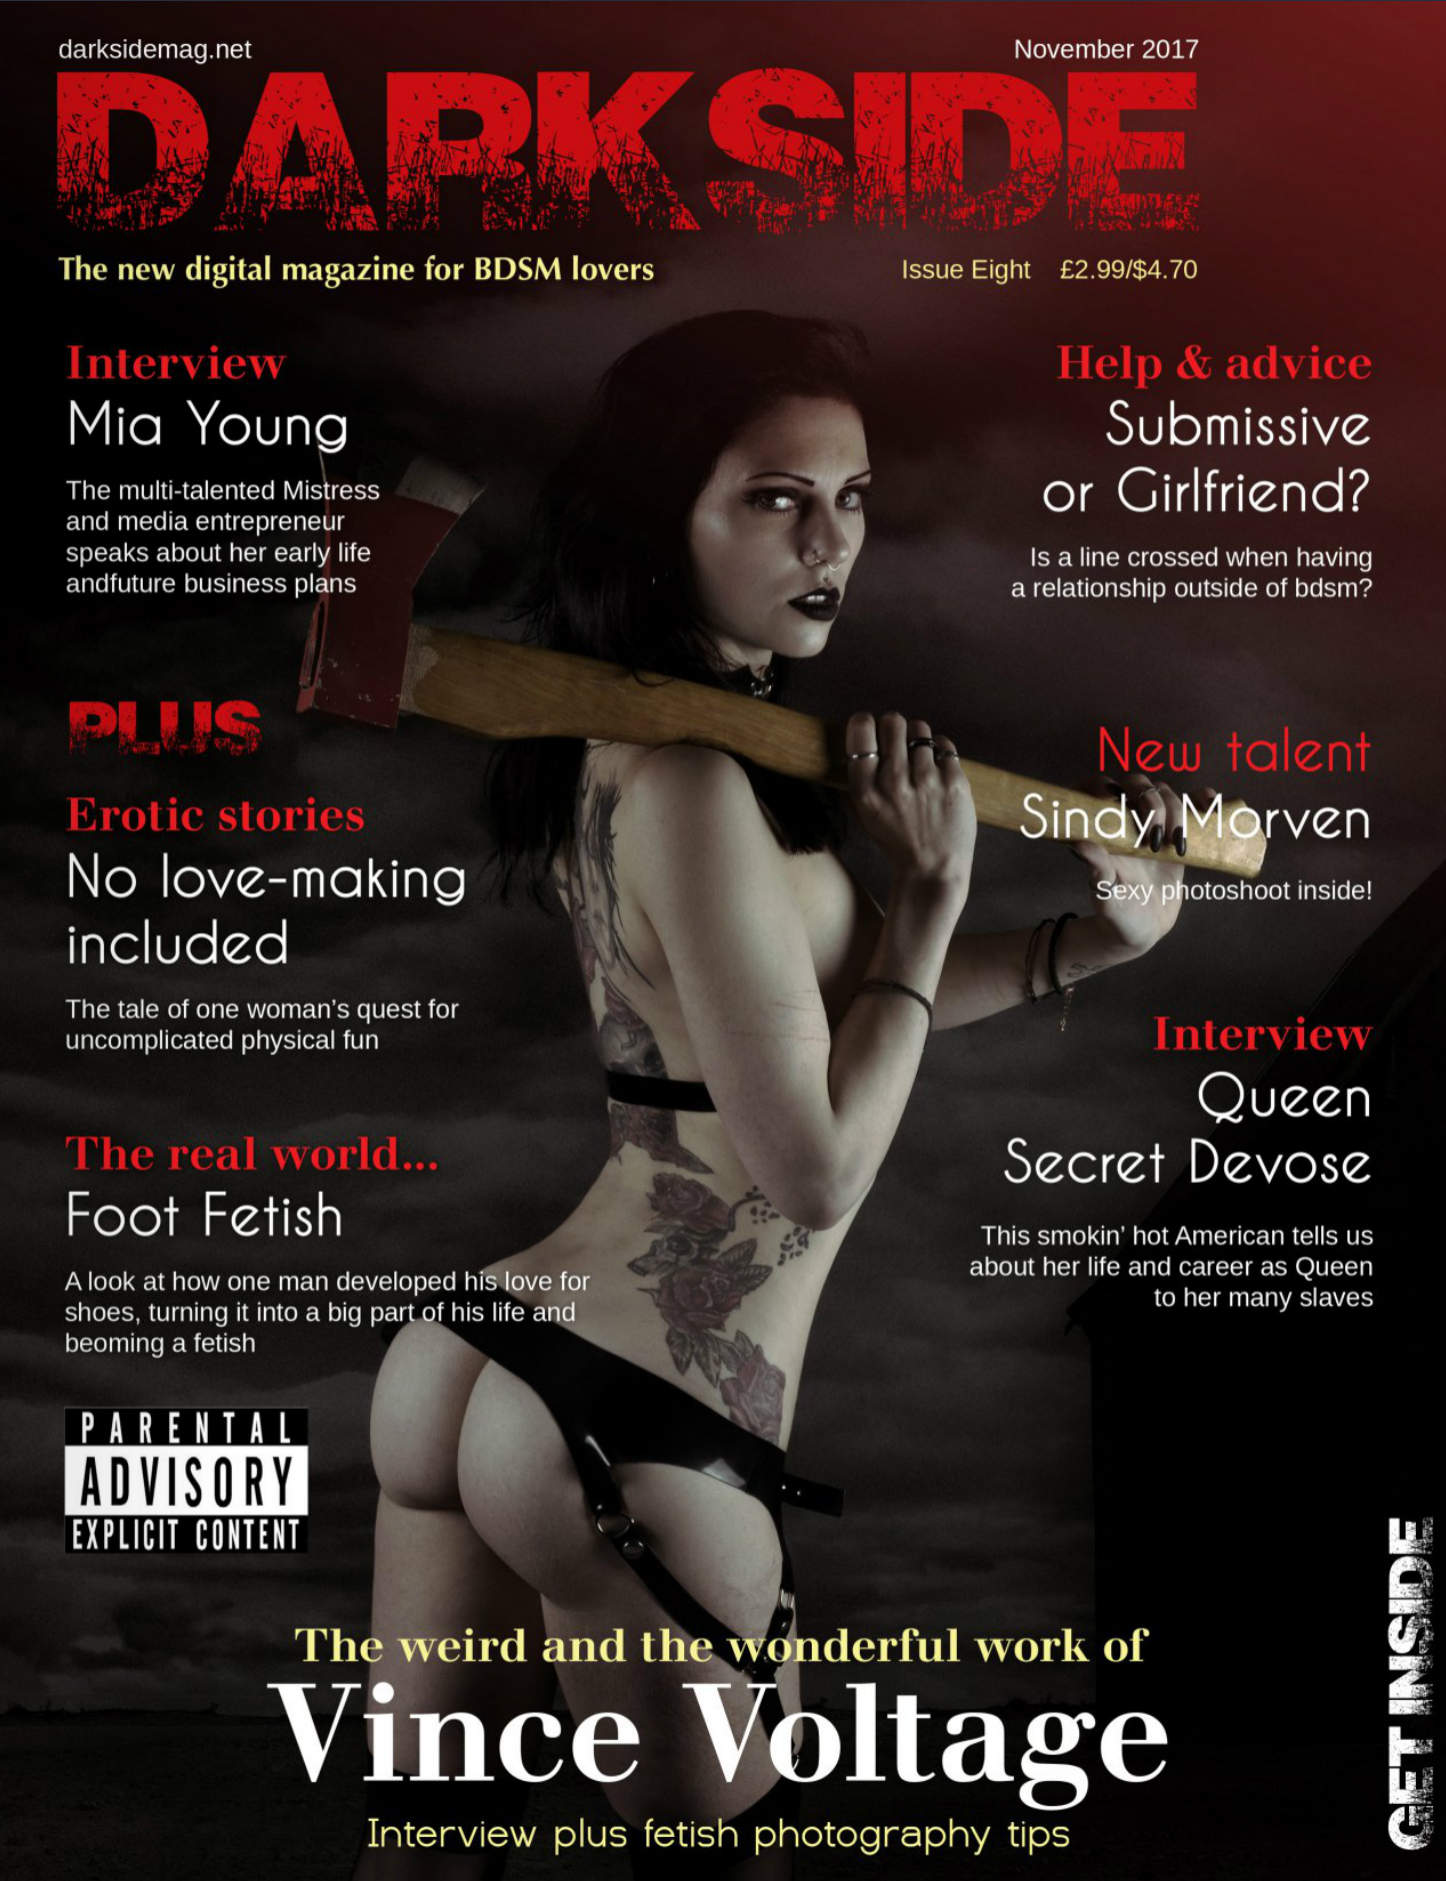 Darkside magazine cover